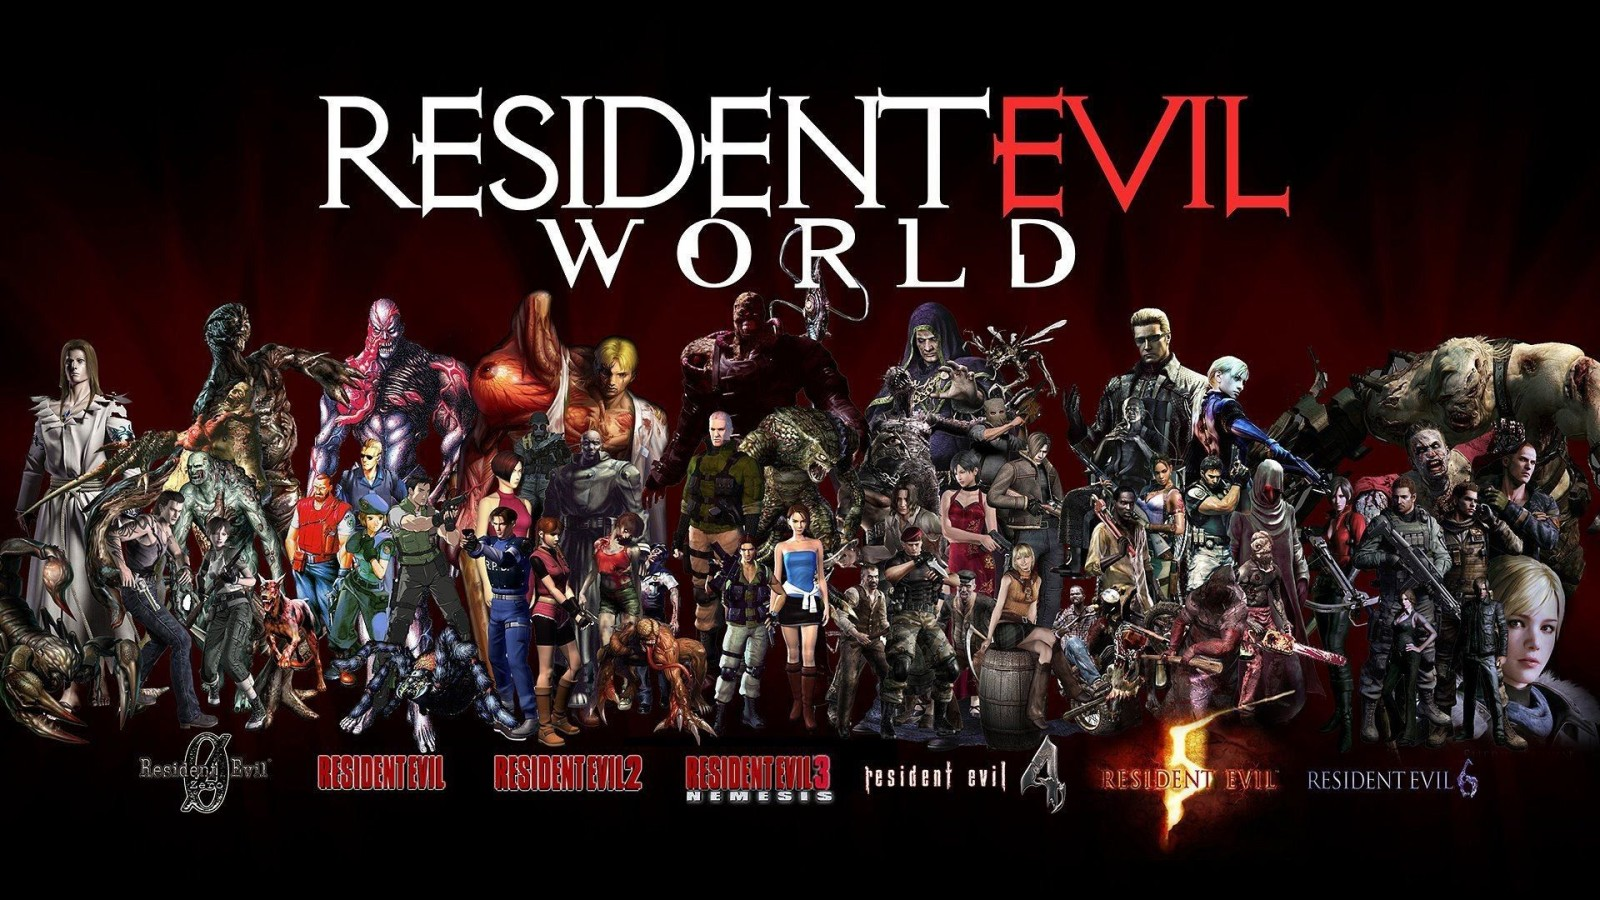 Resident Evil Wallpaper Collection For Free Download